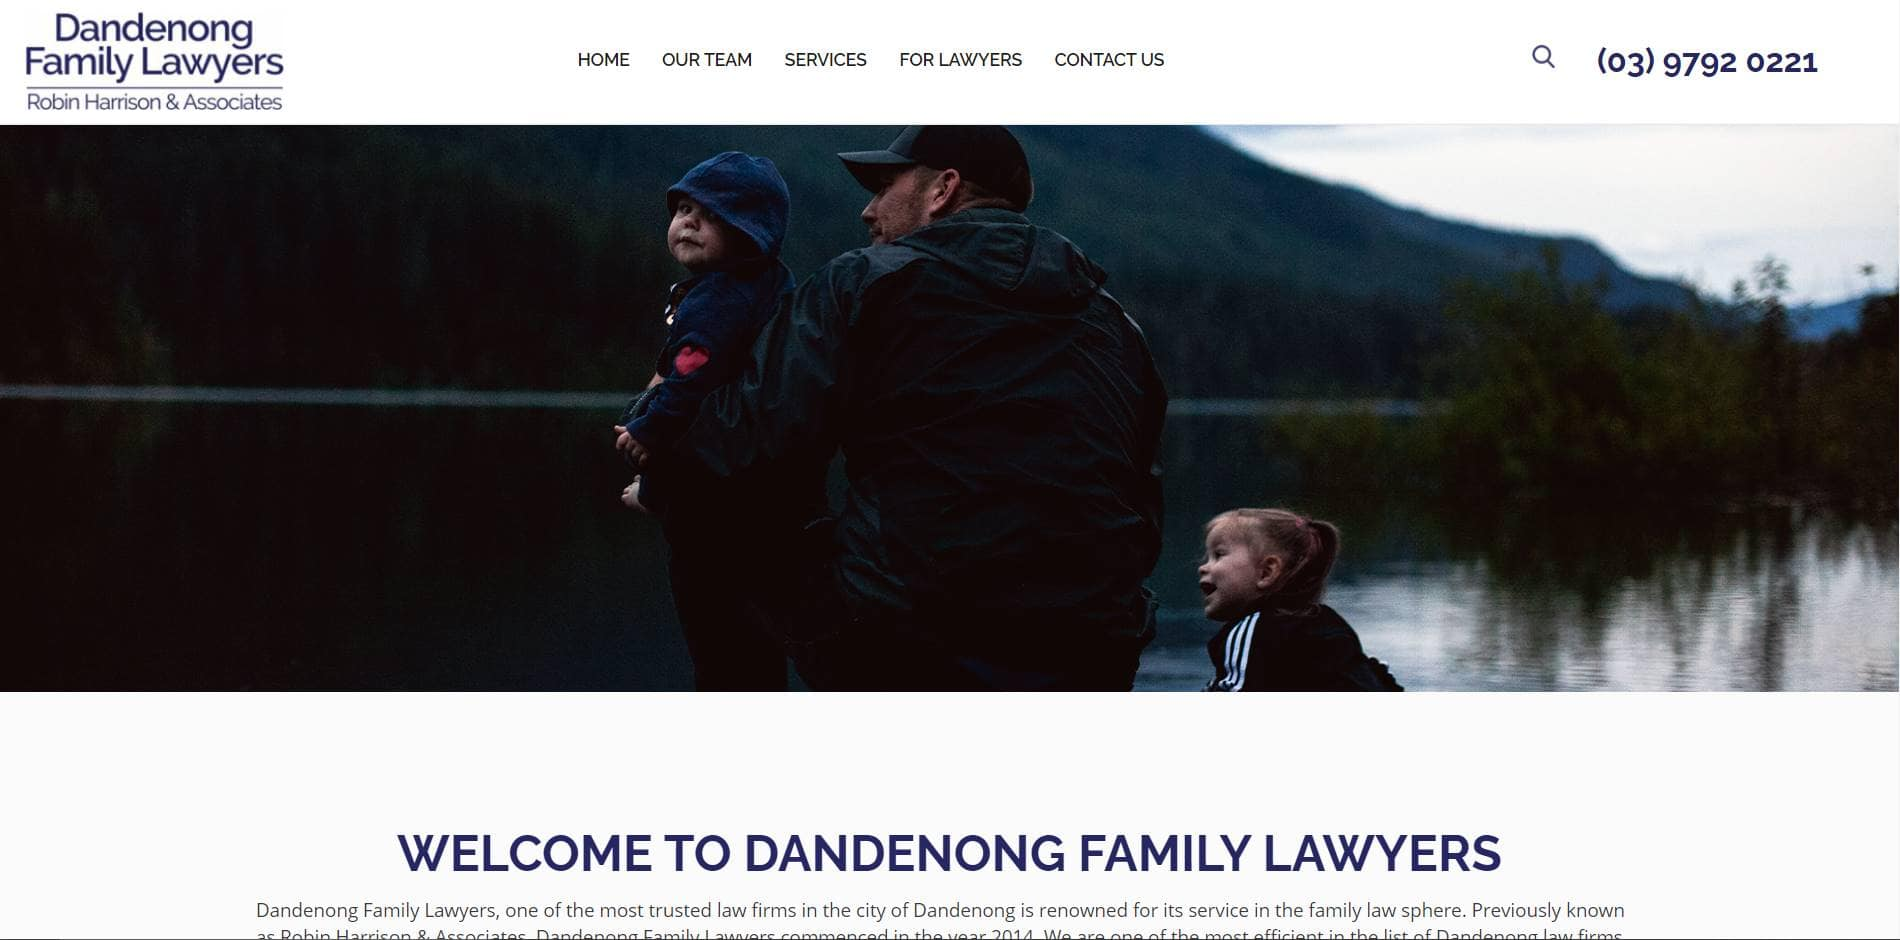 dandenong family lawyers